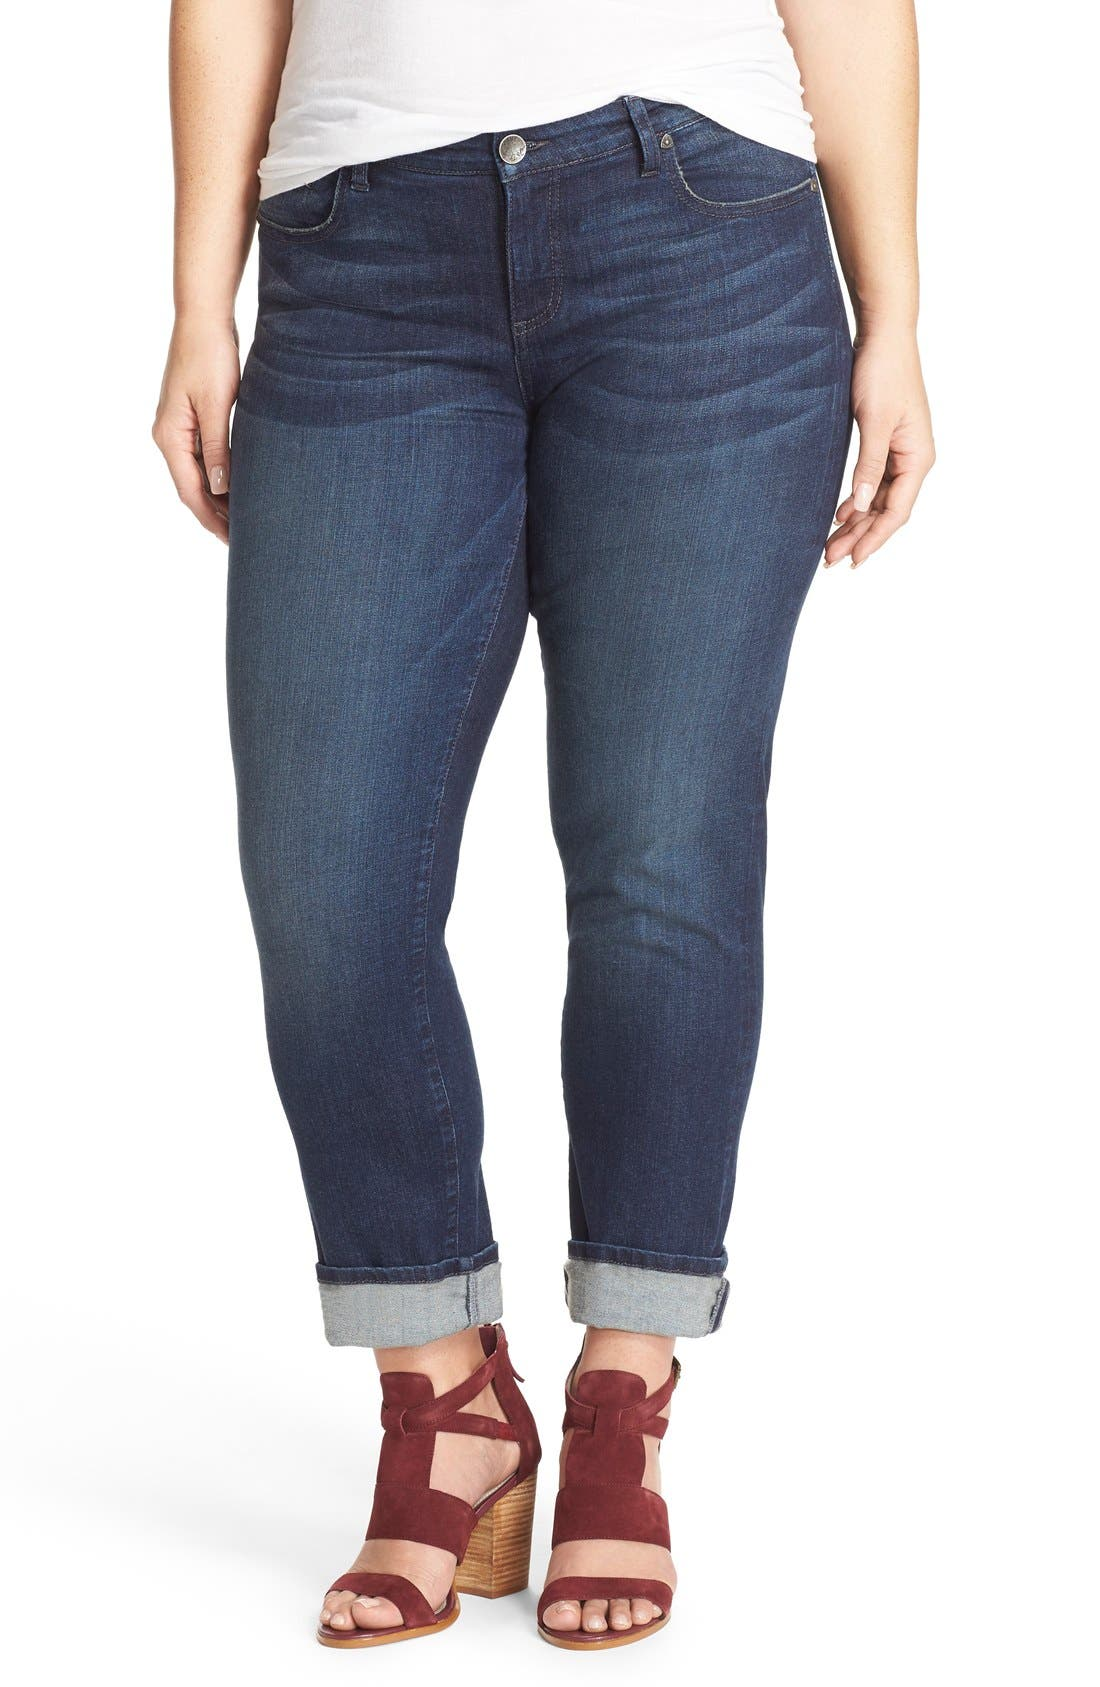 KUT from the Kloth 'Catherine' Stretch Boyfriend Jeans (Carefulness) (Plus Size)